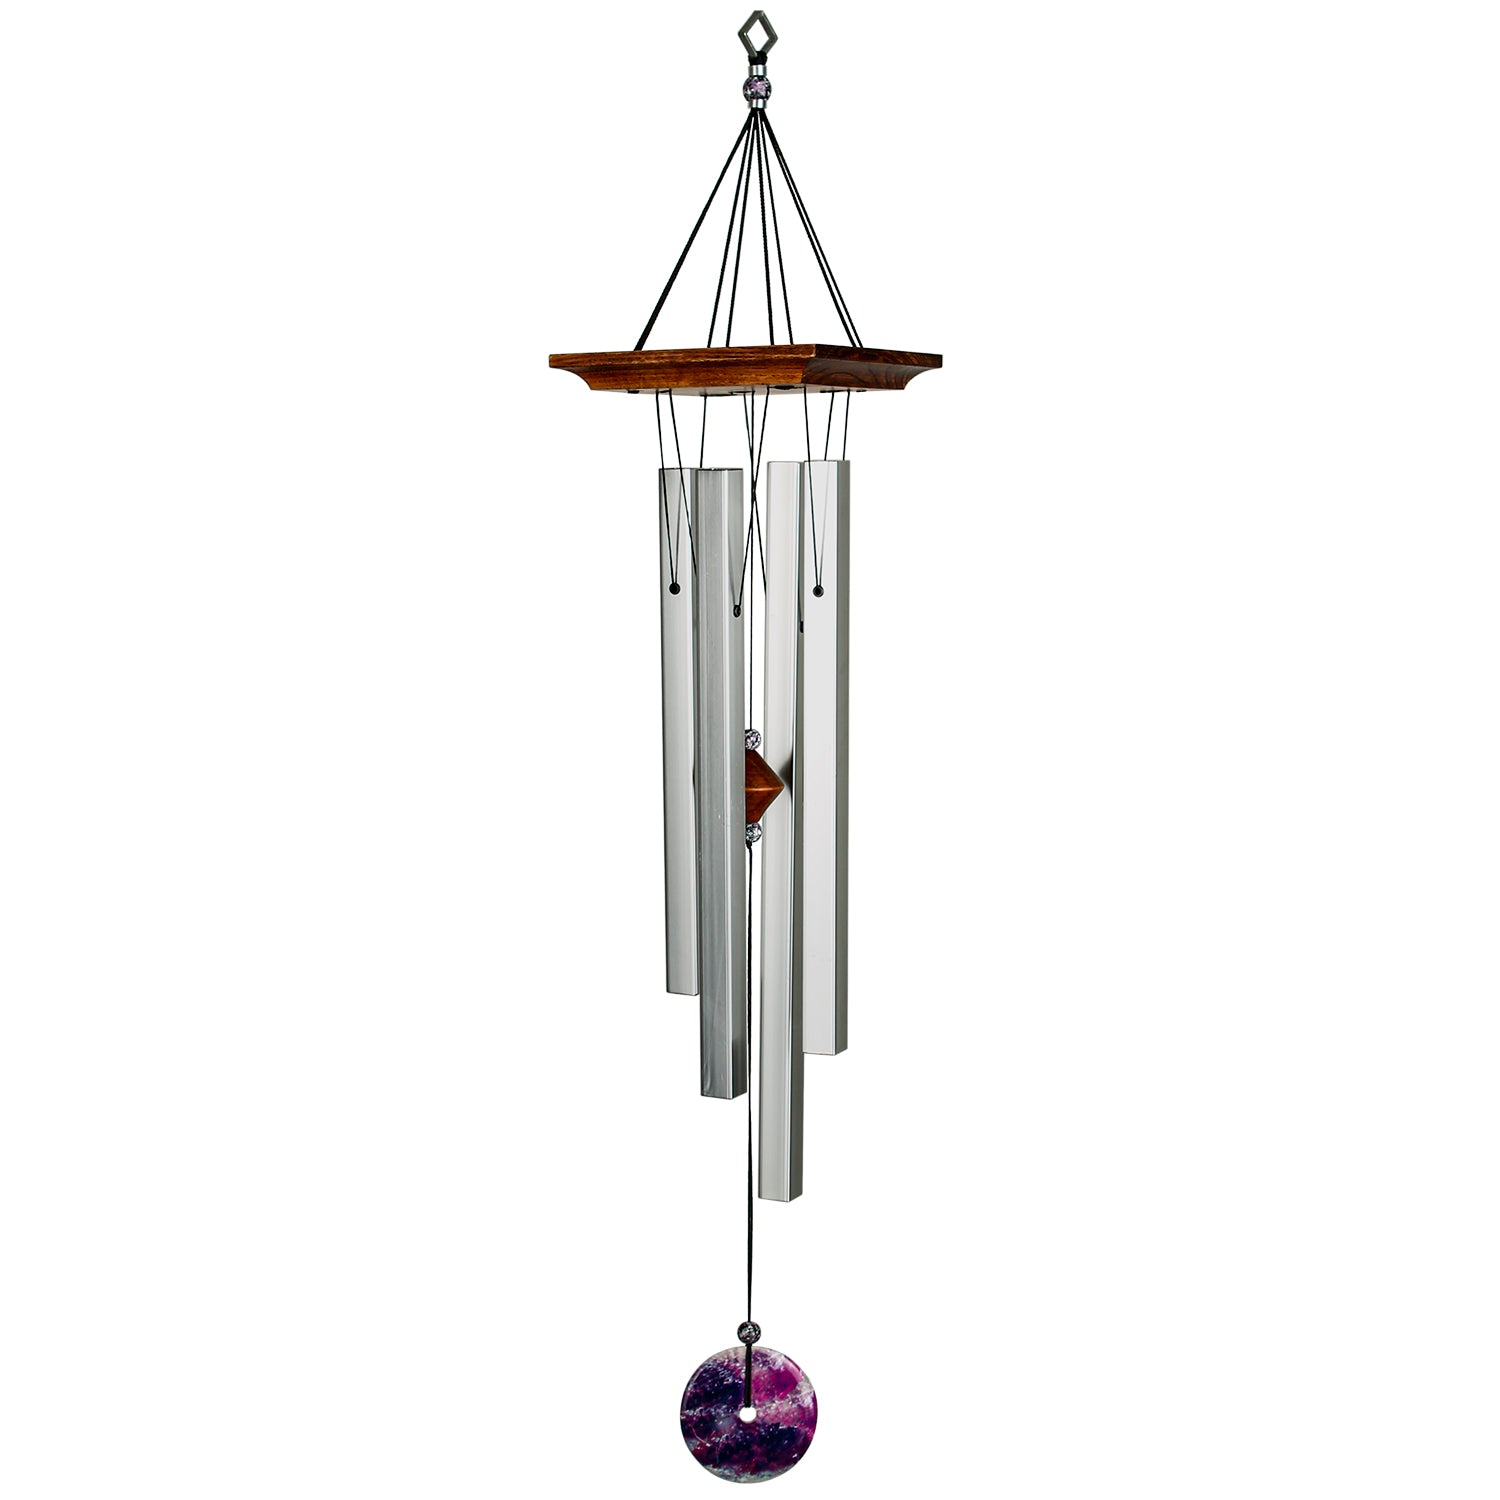 Amethyst Chime - Medium full product image